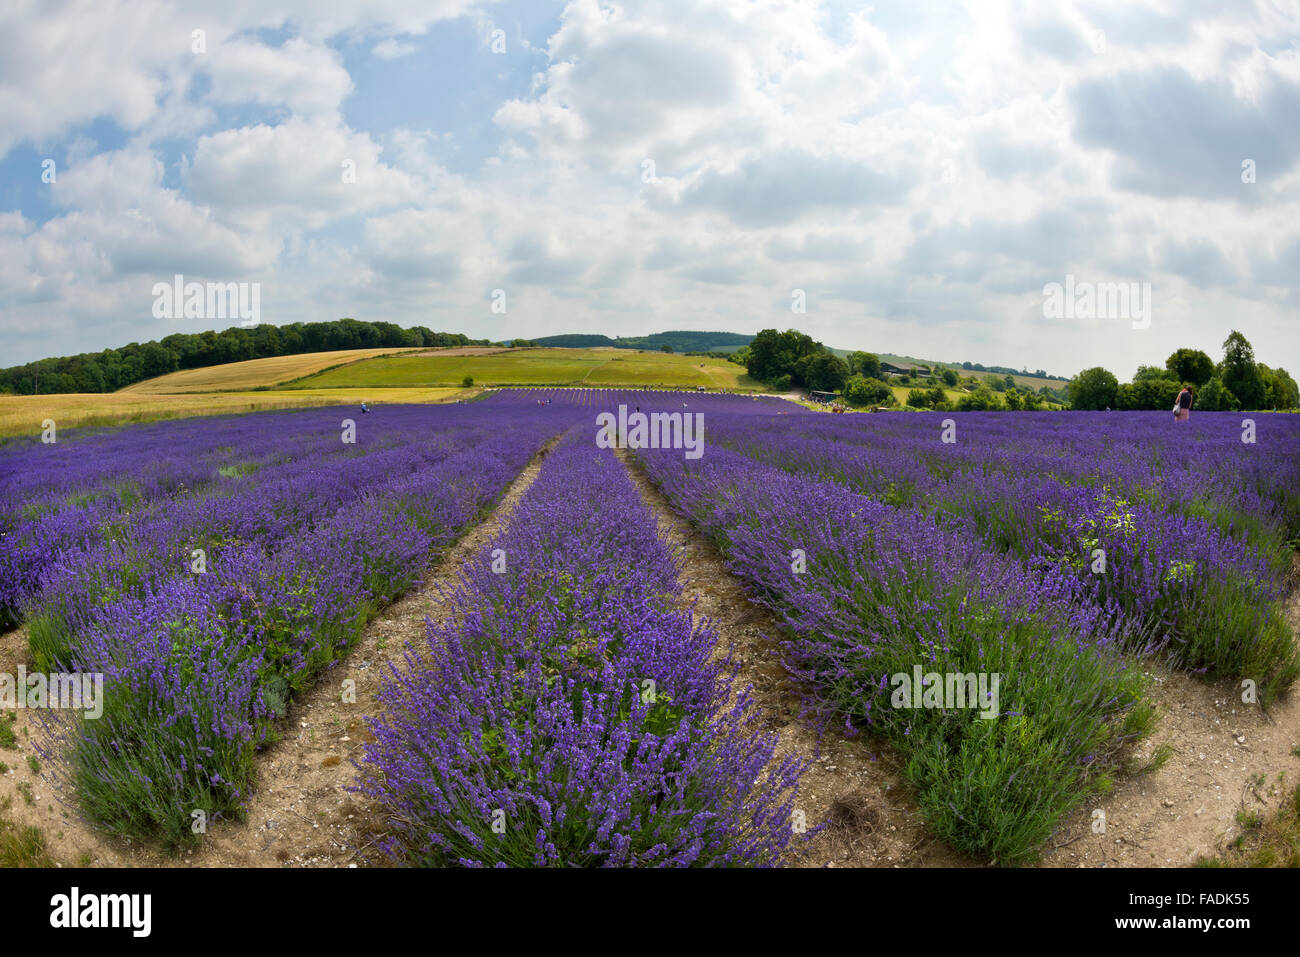 Mailette Lavender ripe for havest in rows at Lordington Lavender is West Sussex near Chichester - Stock Image